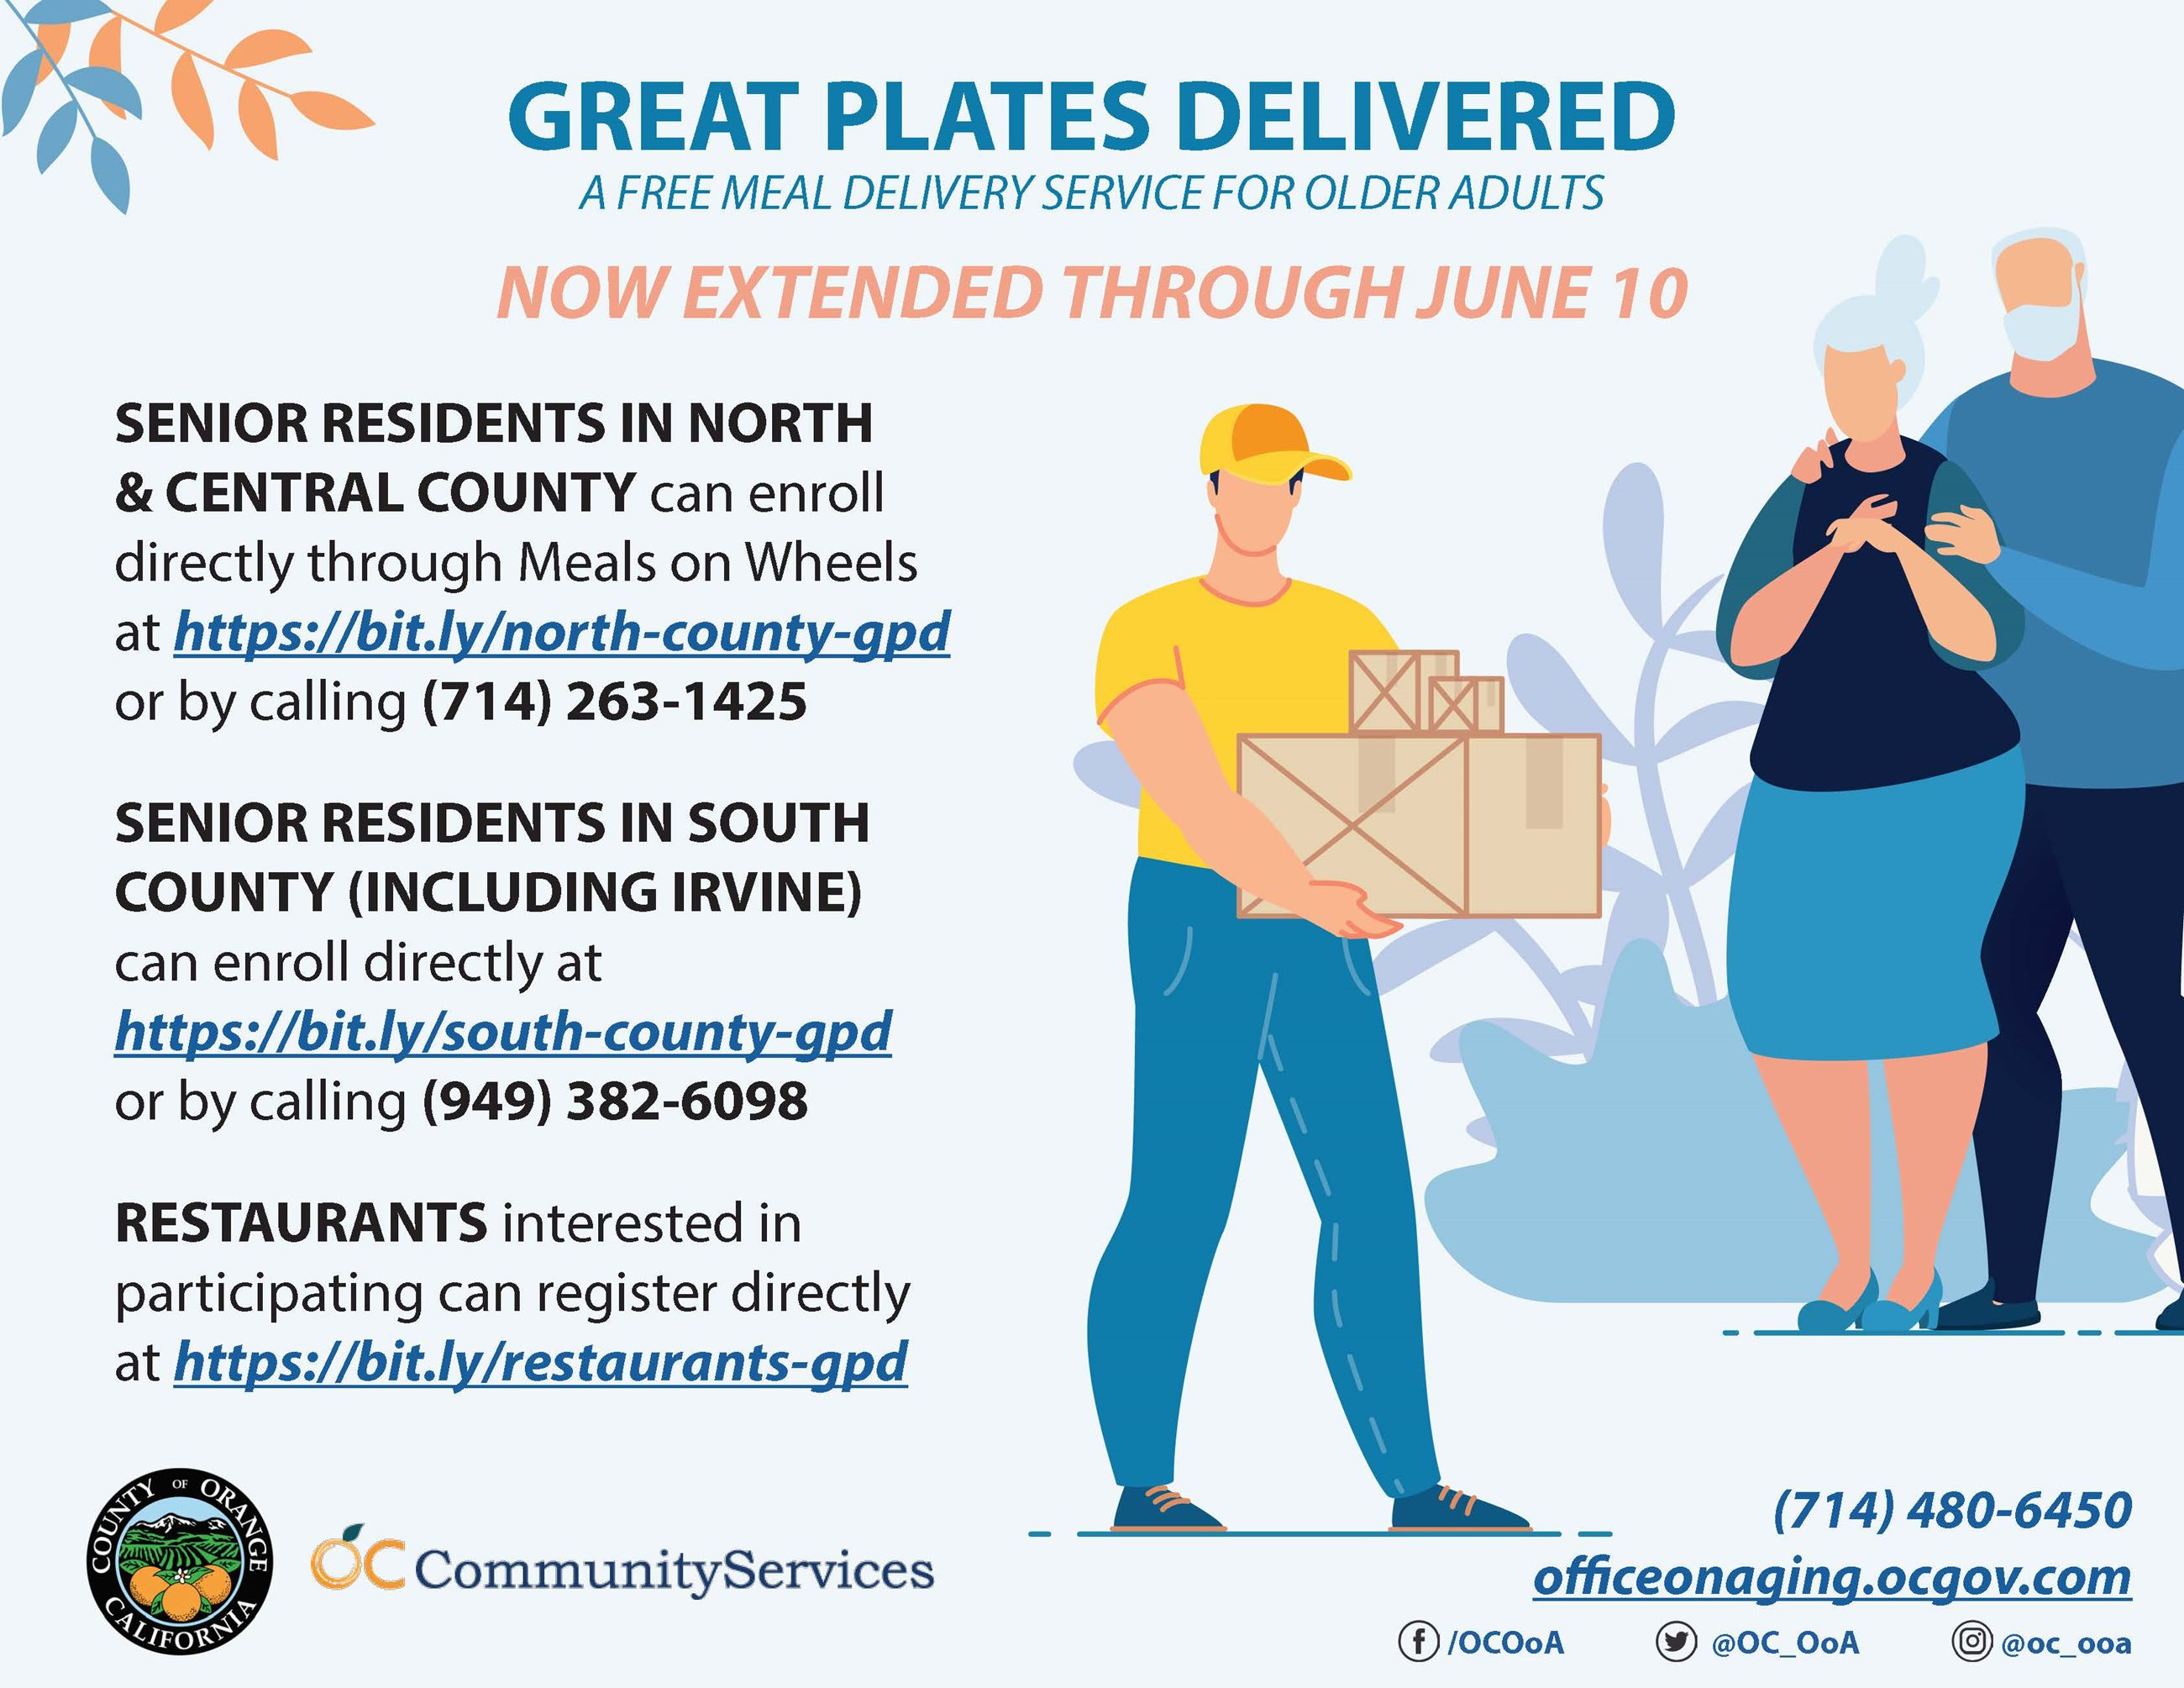 Great plates delivered flyer 5.21.20